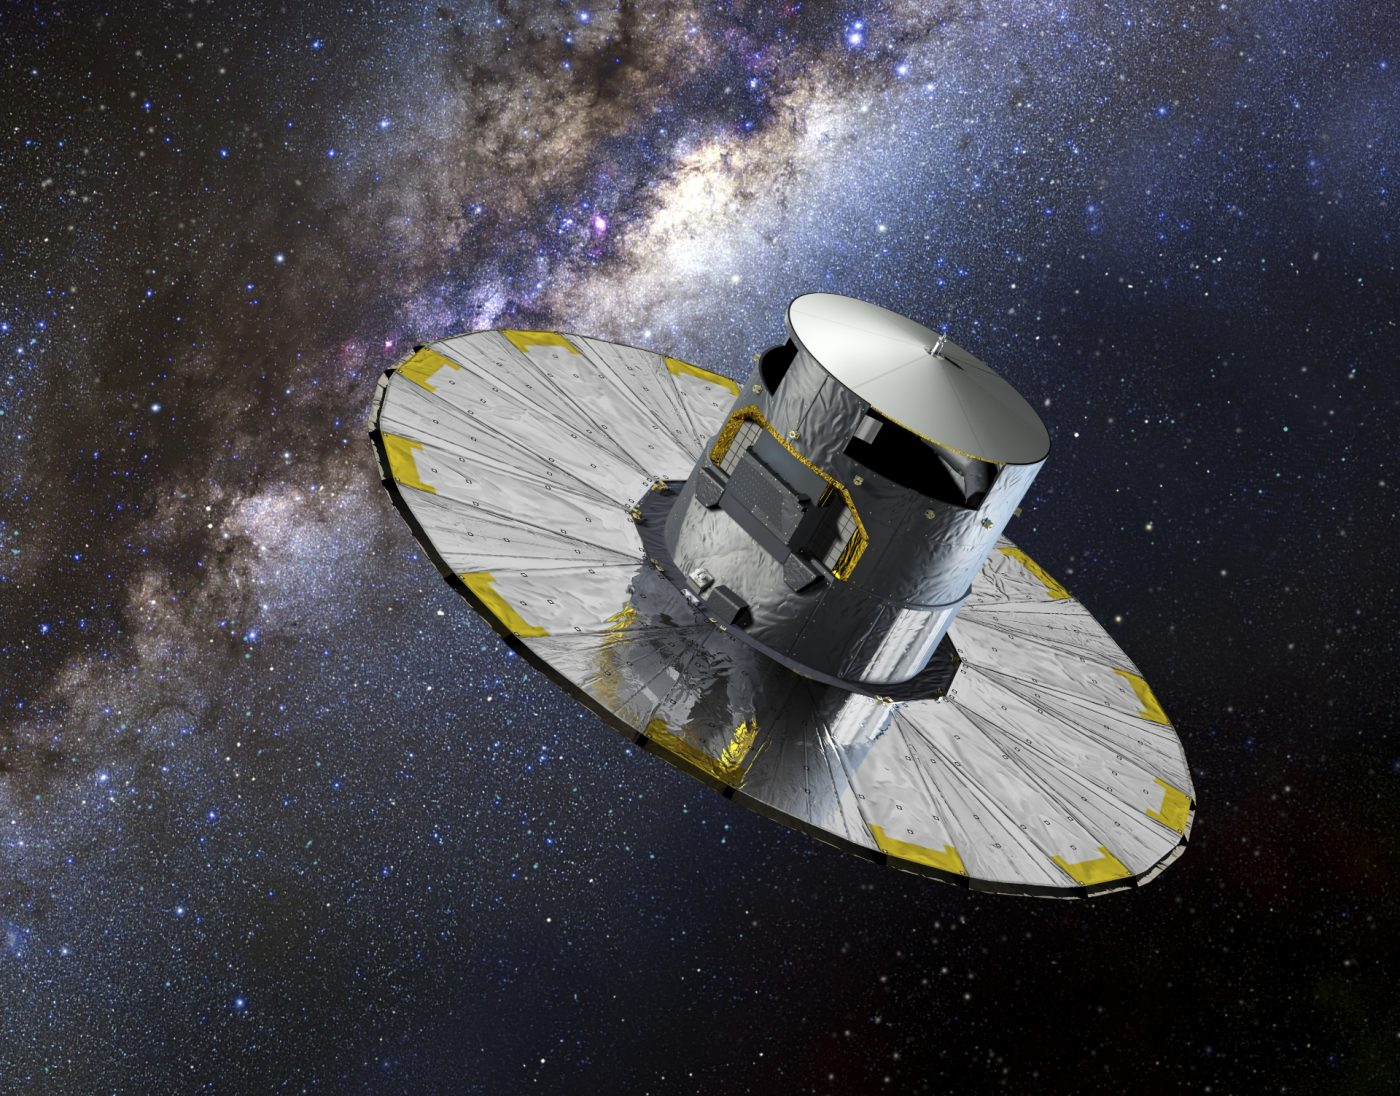 An artists impression of the Gaia satellite in space